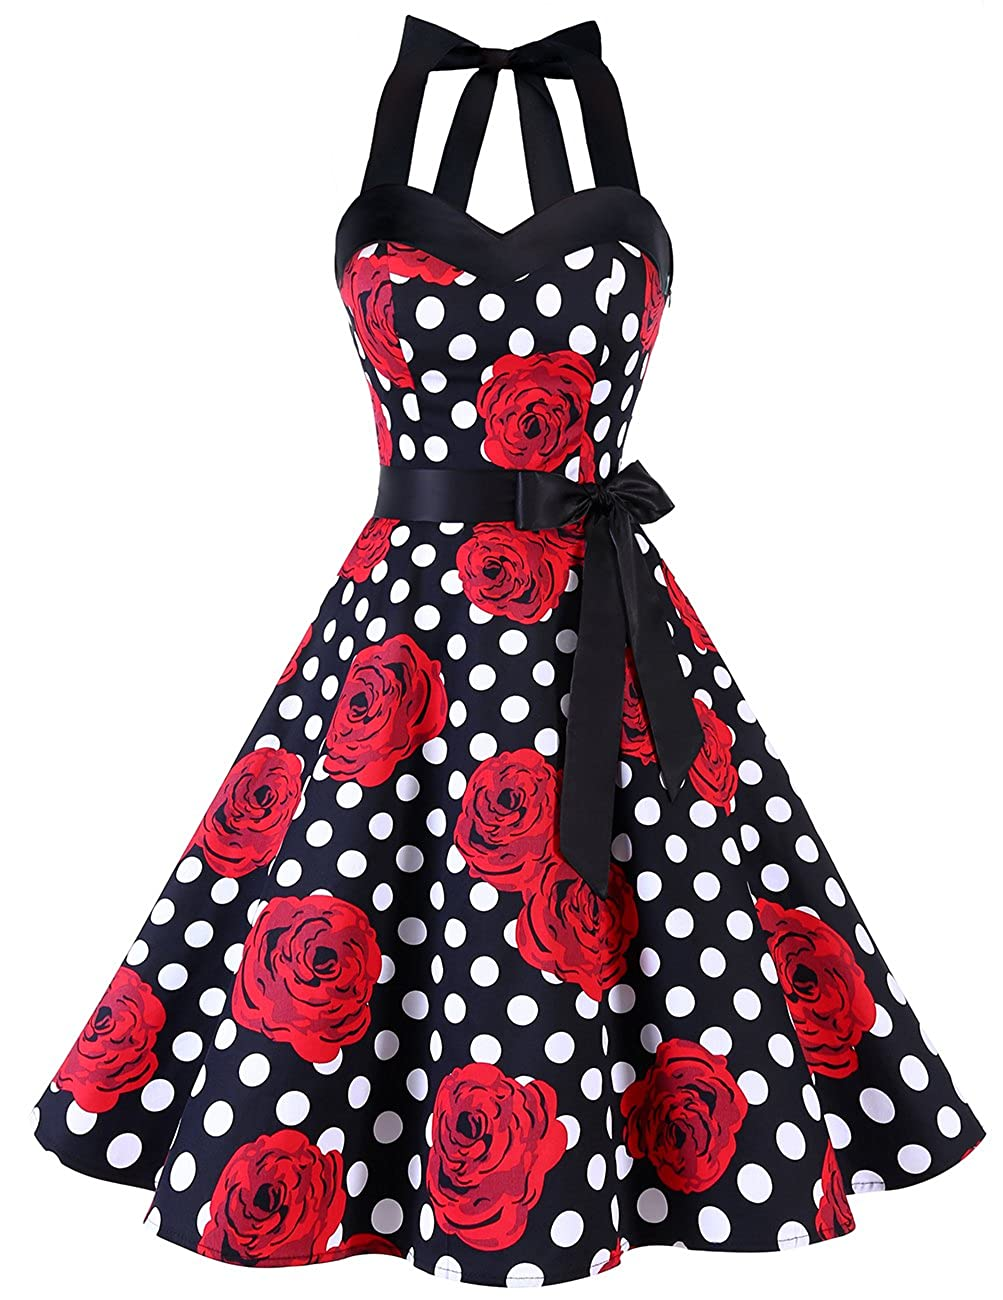 TALLA S. DRESSTELLS® Halter 50s Rockabilly Polka Dots Audrey Dress Retro Cocktail Dress Black Red Rose Dot